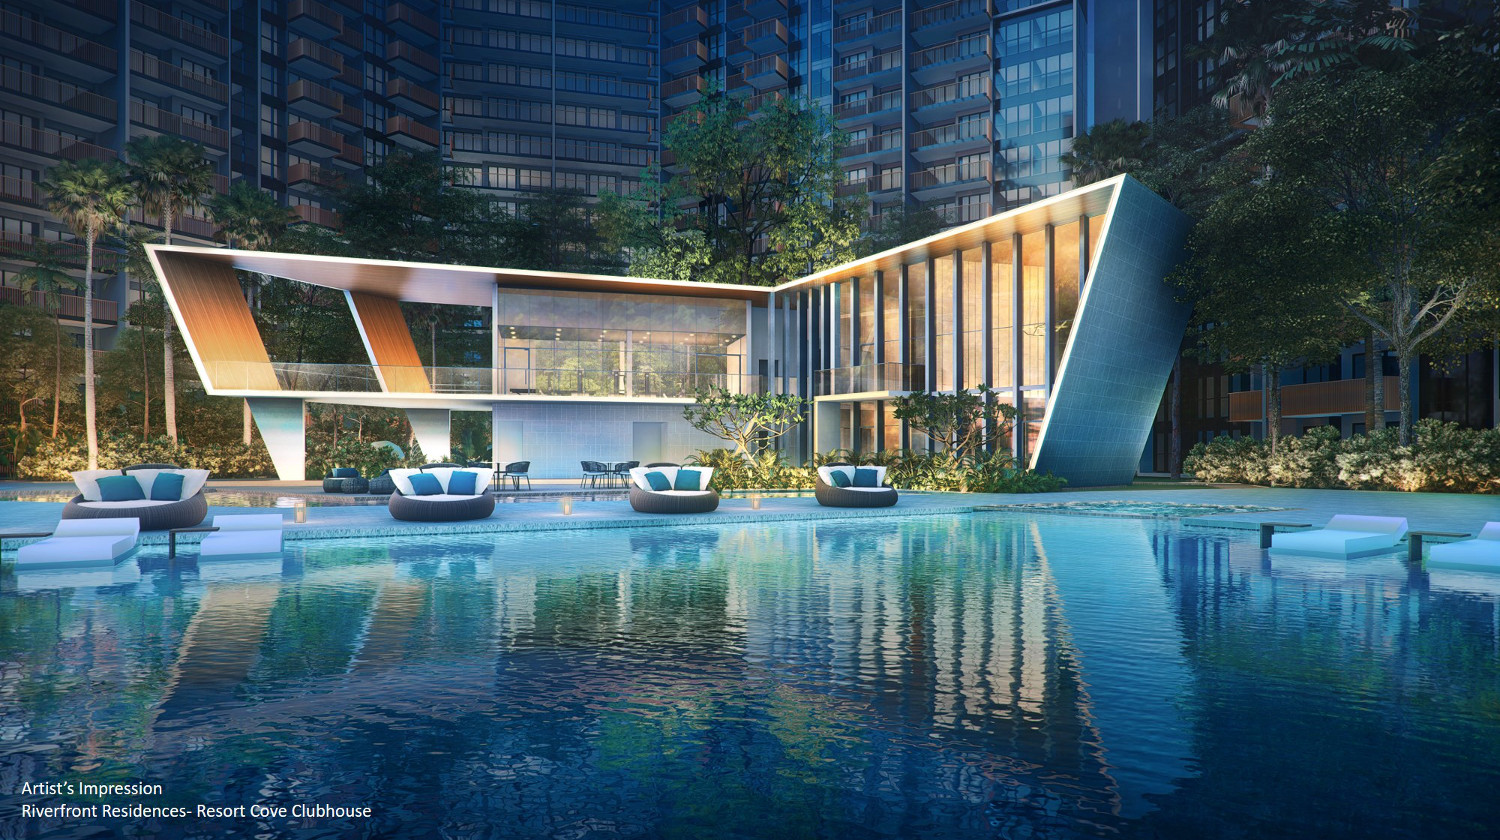 Riverfront Residences by Oxley . Developer for Kent Ridge Hill Residences